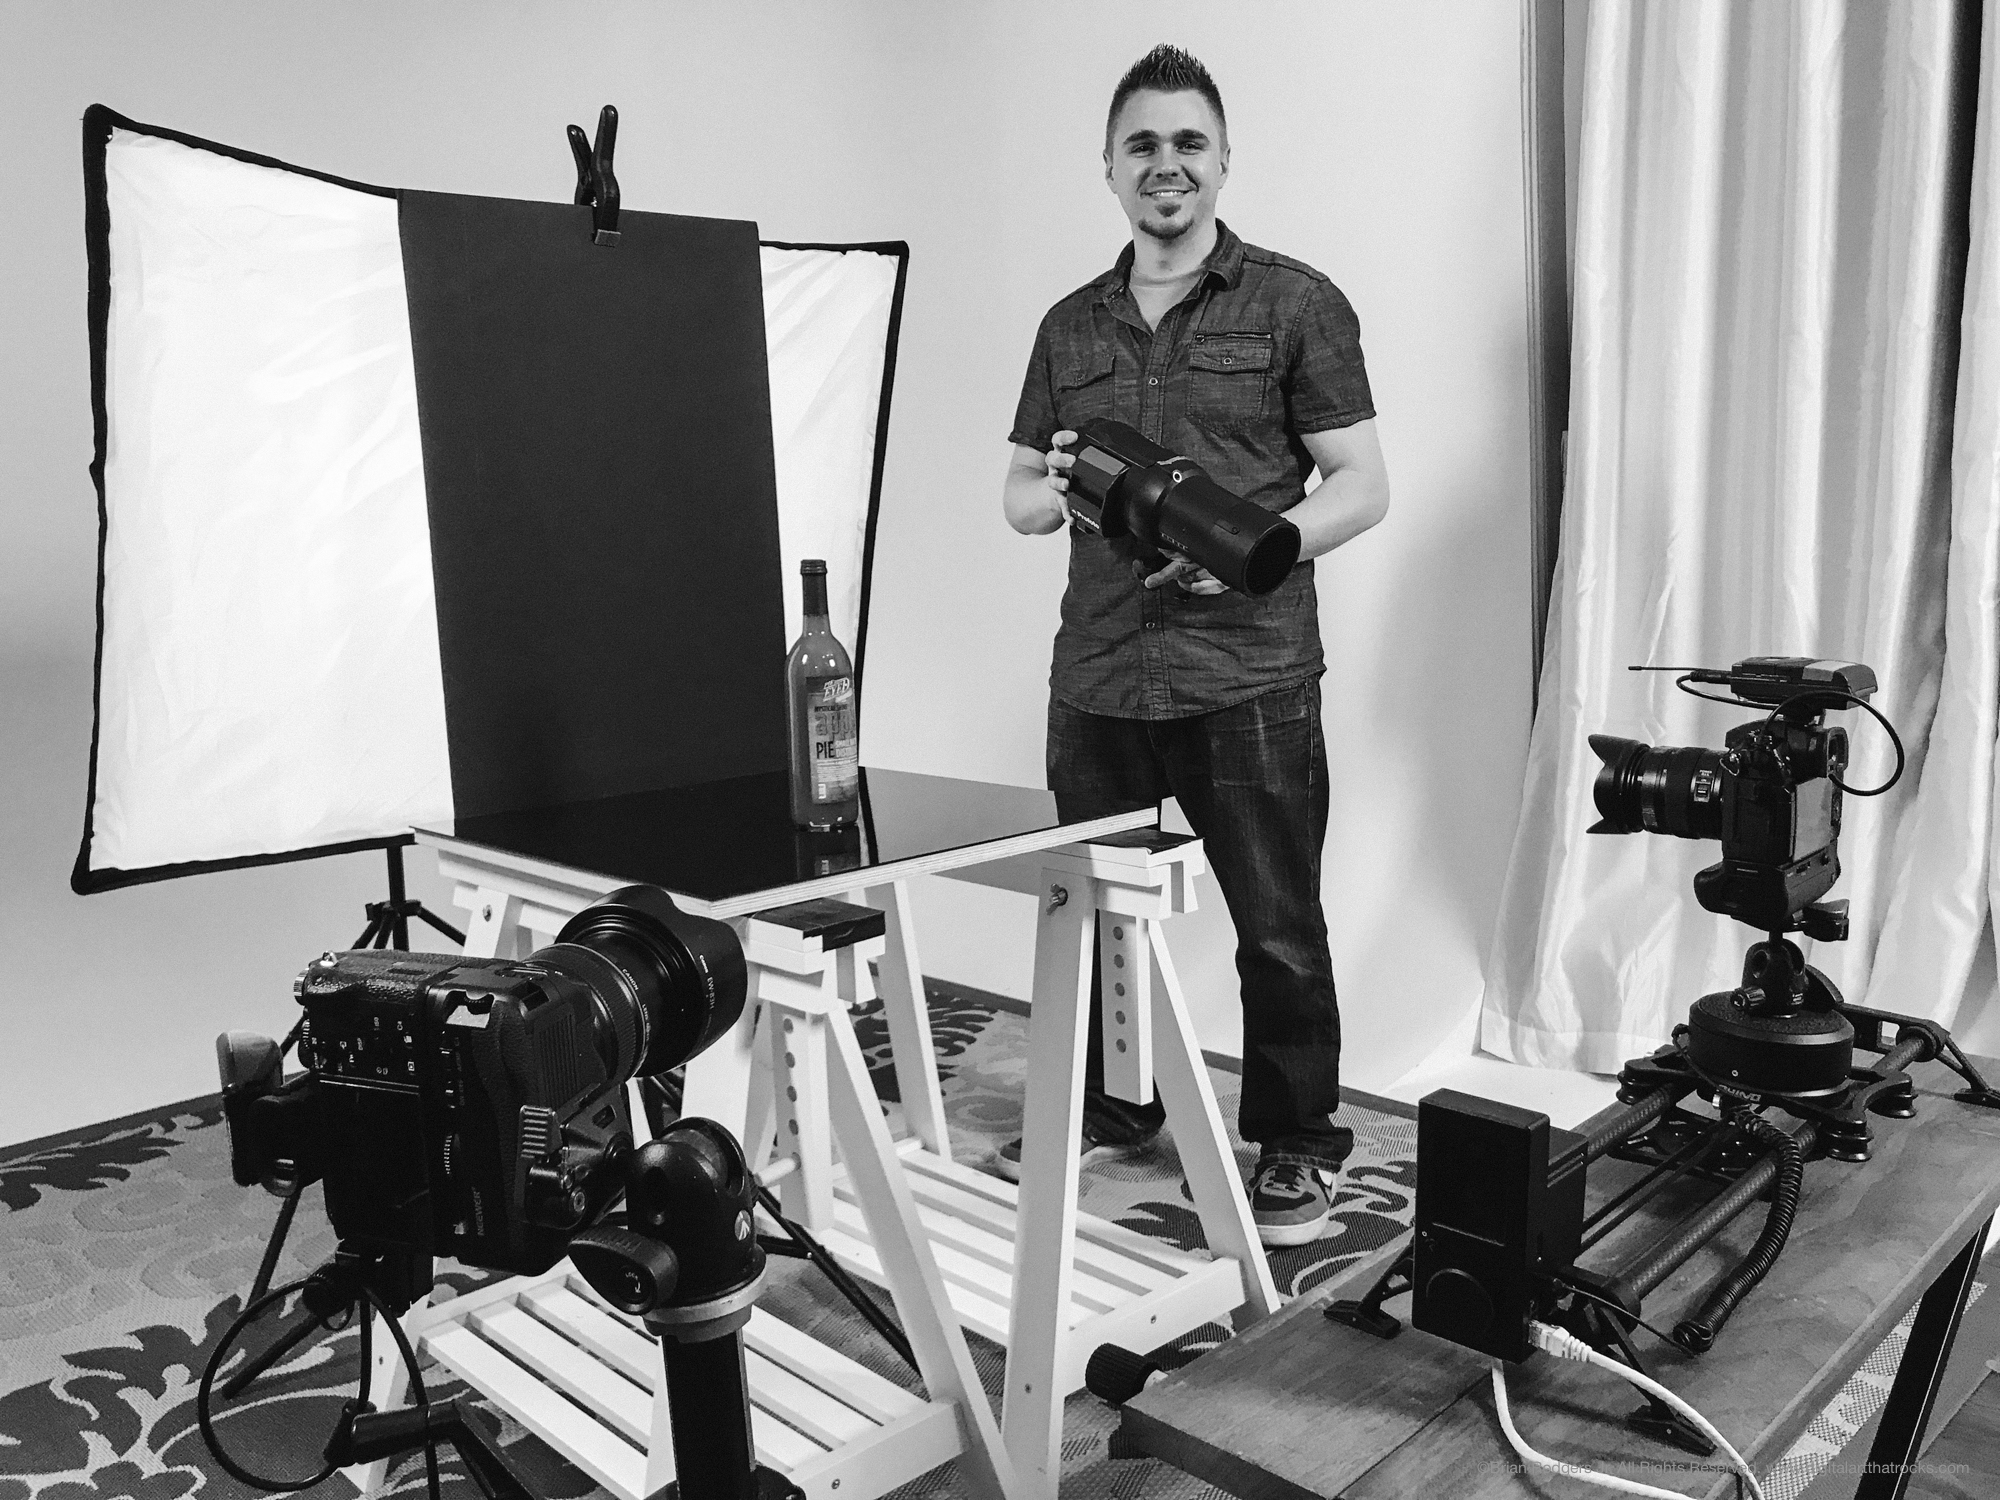 Brian Rodgers Jr. on set at Fstoppers headquarters doing a studio lighting demonstration for product photography